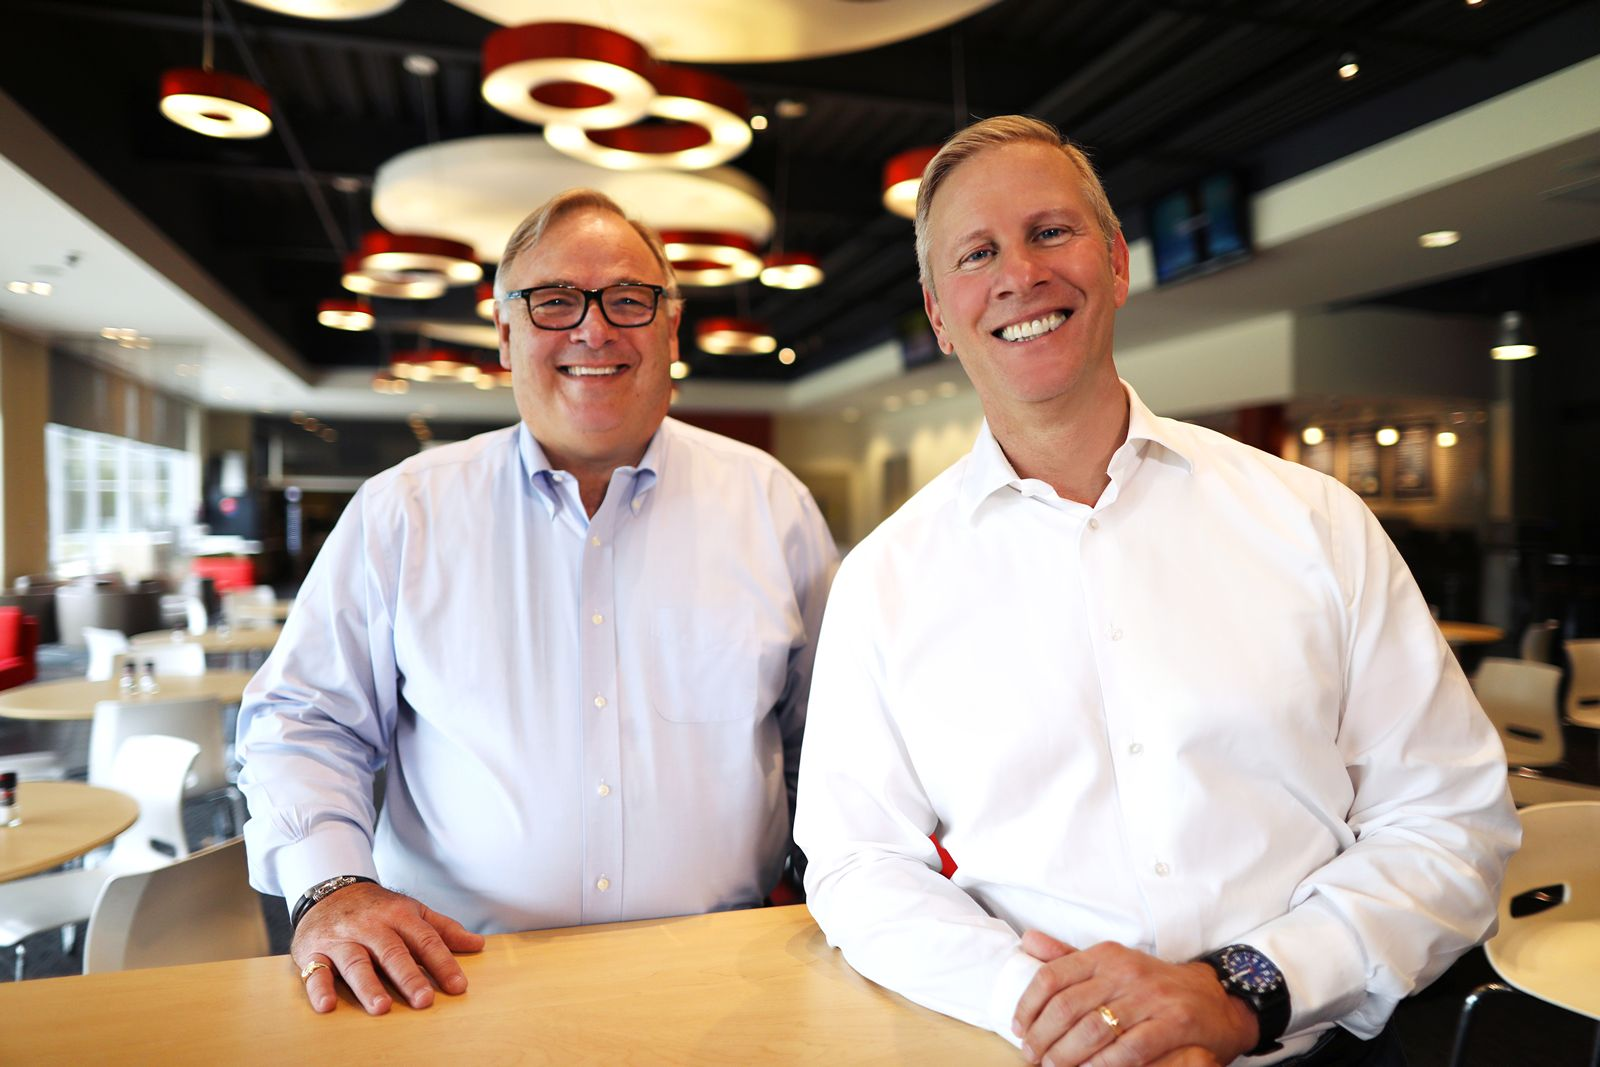 Pictured, left to right: Yum! Brands CEO Greg Creed with President and Chief Operating Officer David Gibbs.